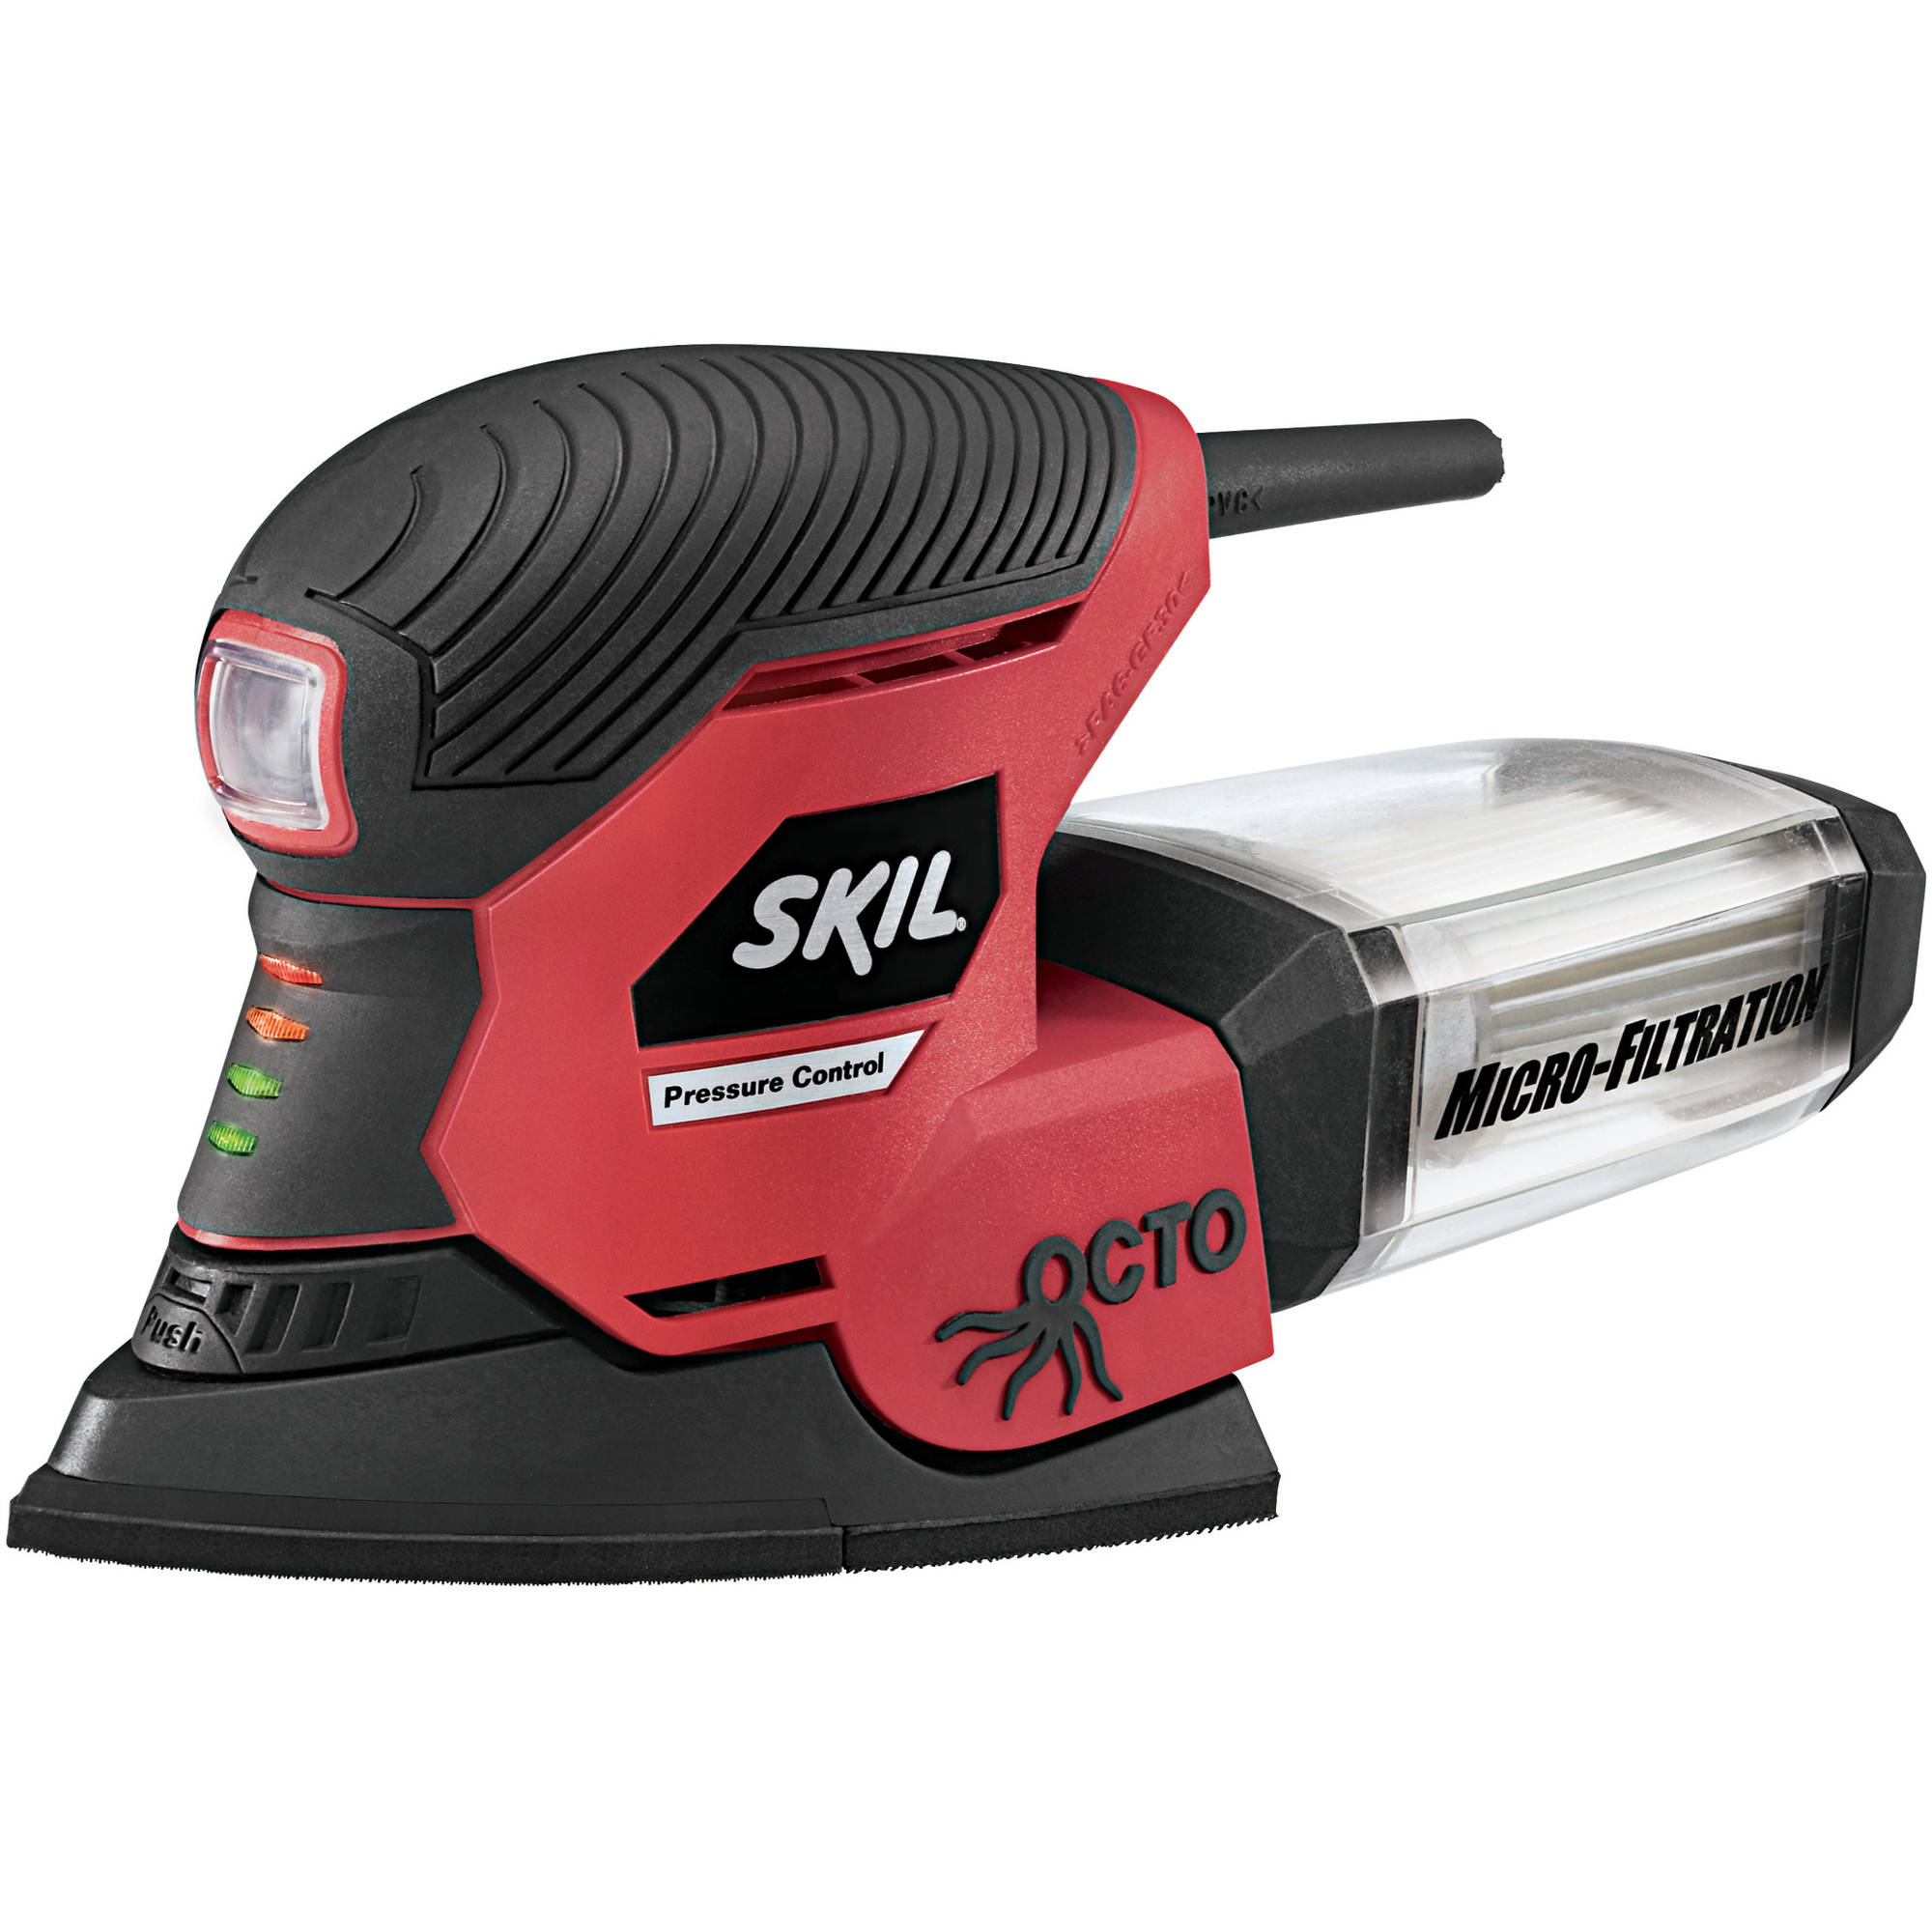 SKIL OCTO Multi-Finishing Sander with Pressure Control and Micro Filtration